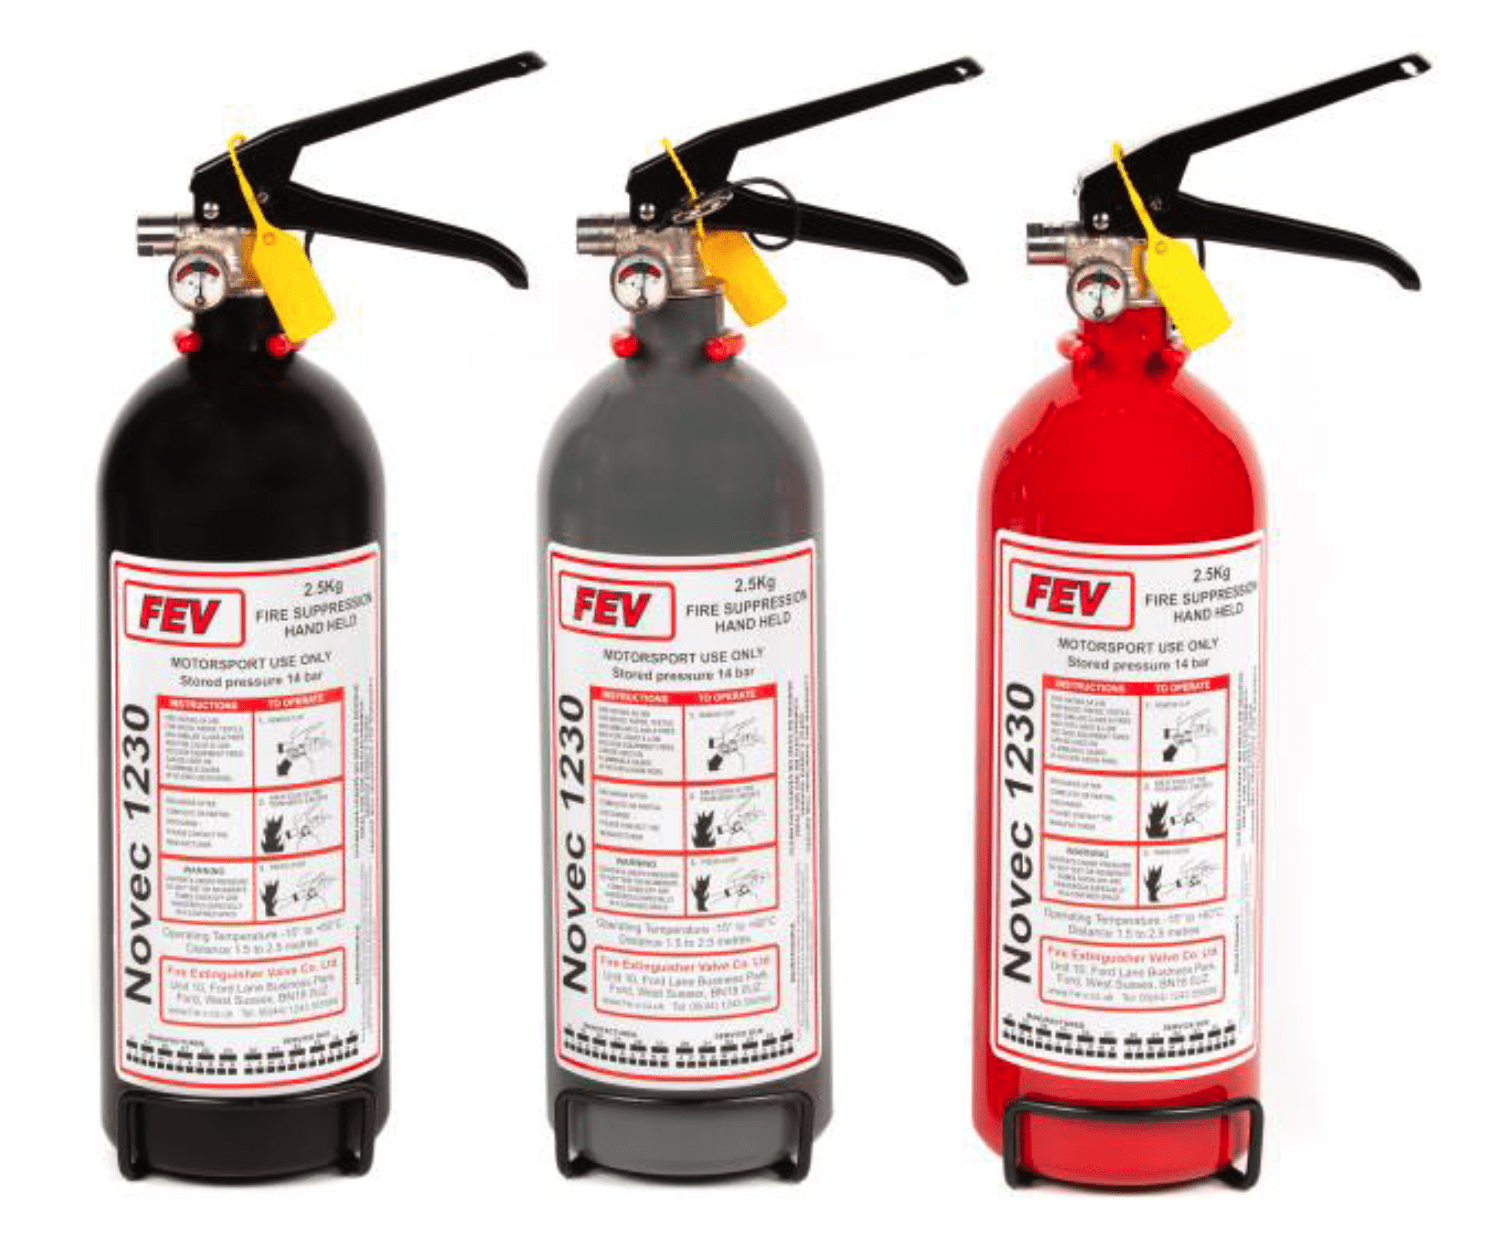 FEV FIRE EXTINGUISHER 2.5KG Novec 1230 Gas Handheld Extinguisher - FEV FE-NOVEC2500HH-MB, FE-NOVEC2500HH-MG and FE-NOVEC2500HH